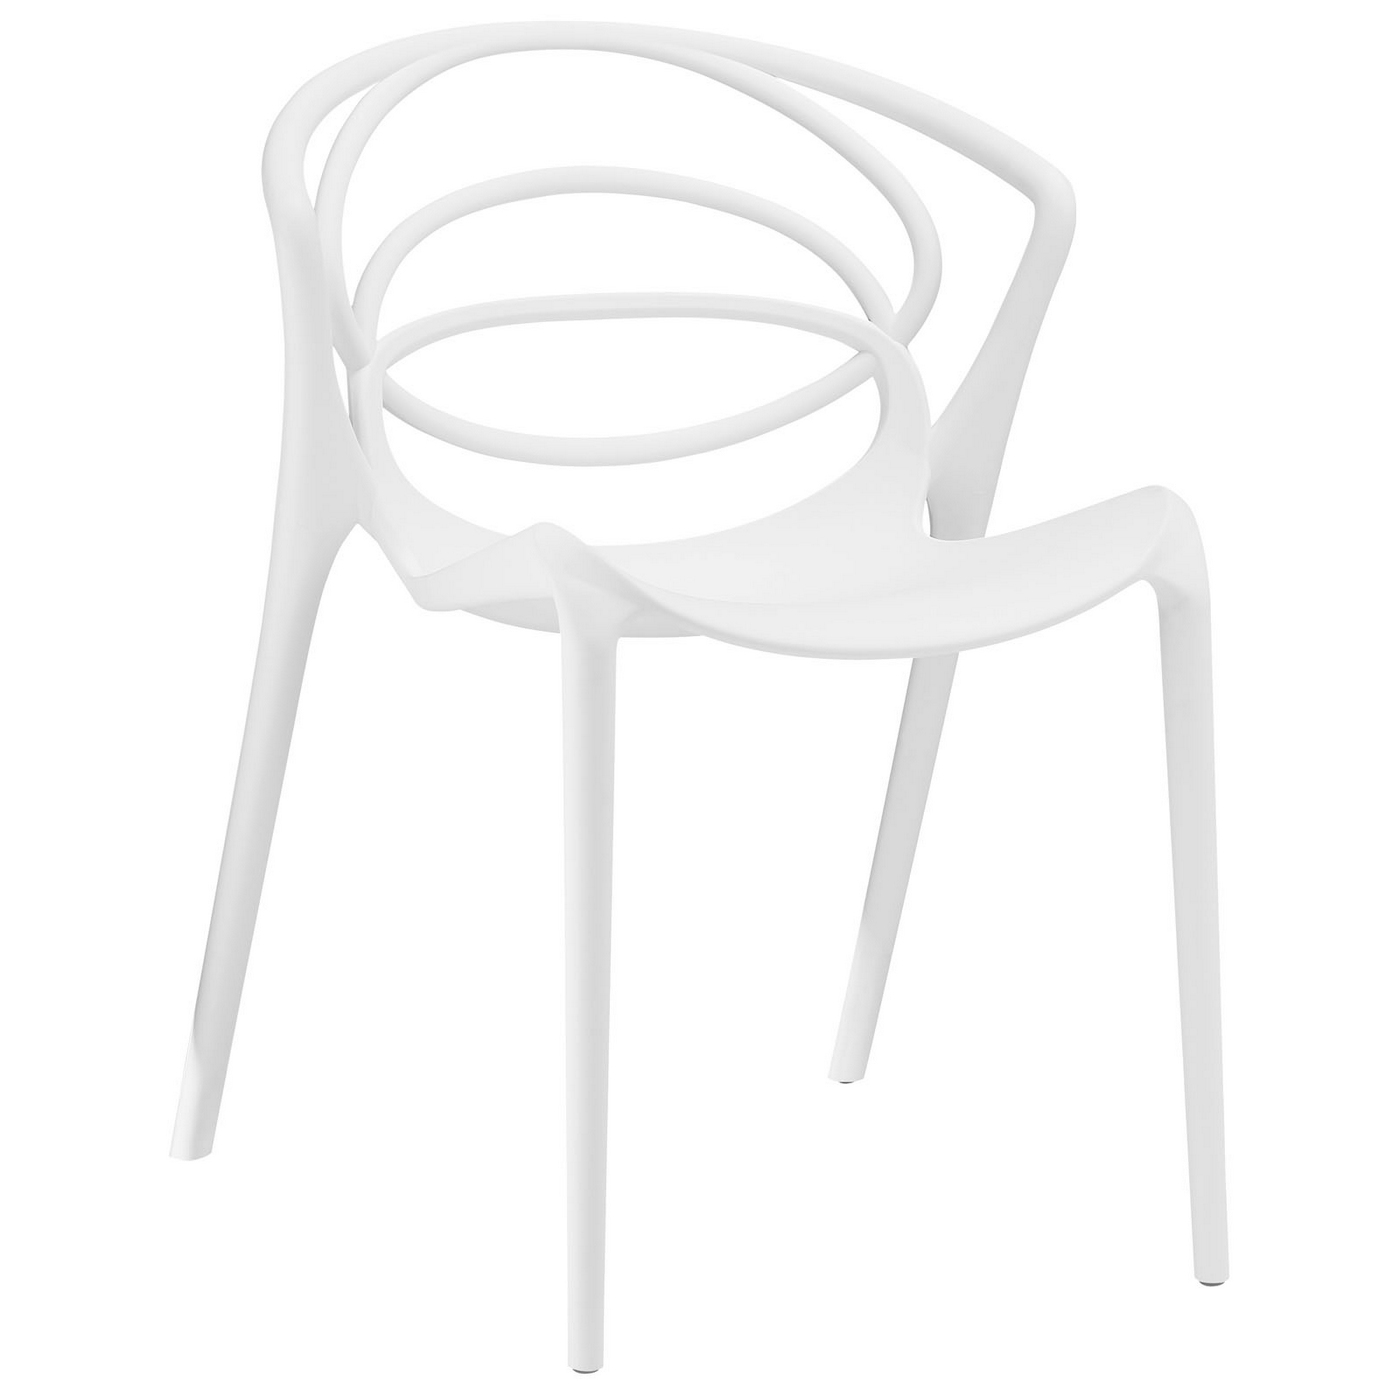 Locus Modern Molded Plastic Stylish Dining Side Chair White